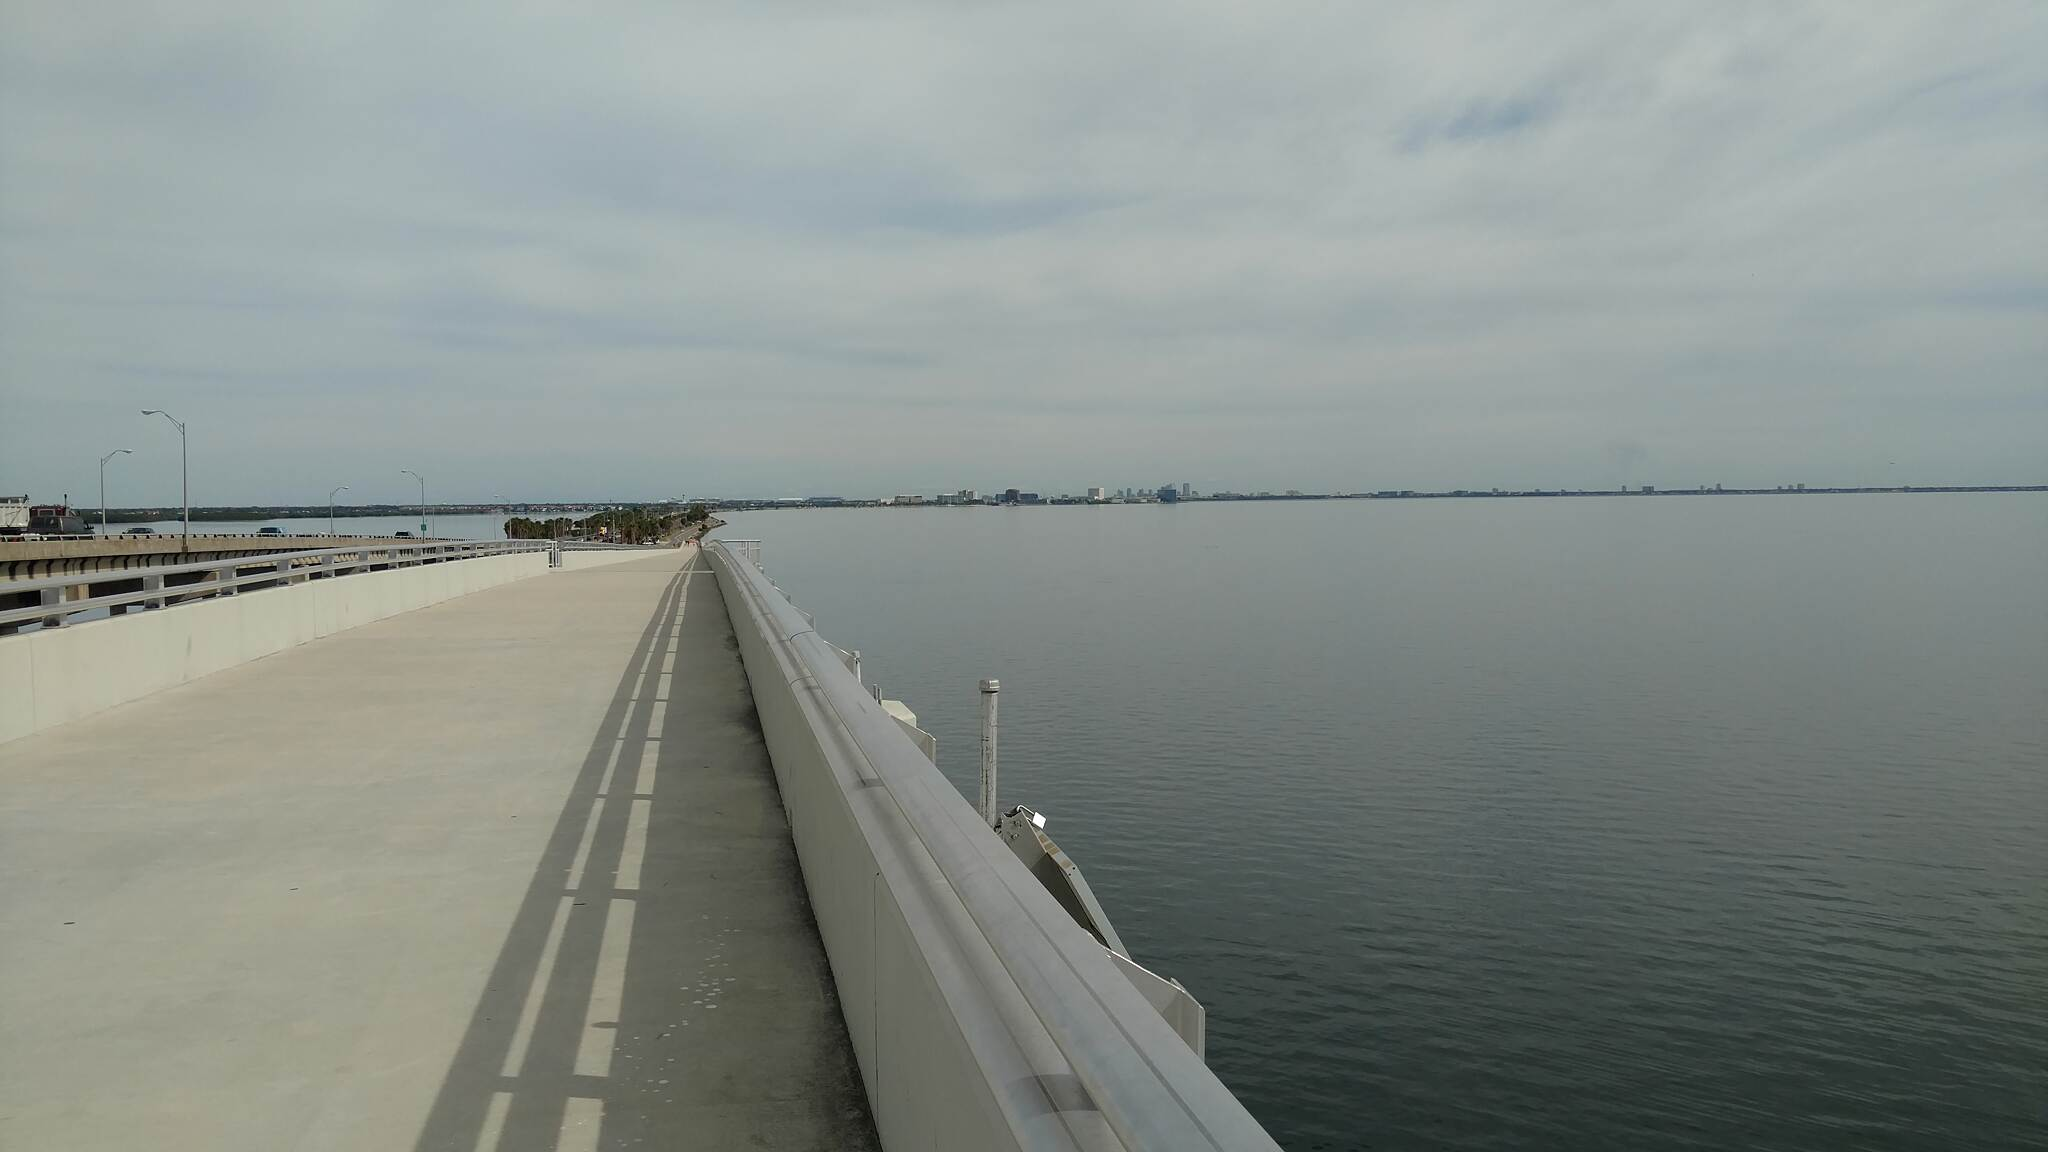 Courtney Campbell Trail Tampa from the bridge